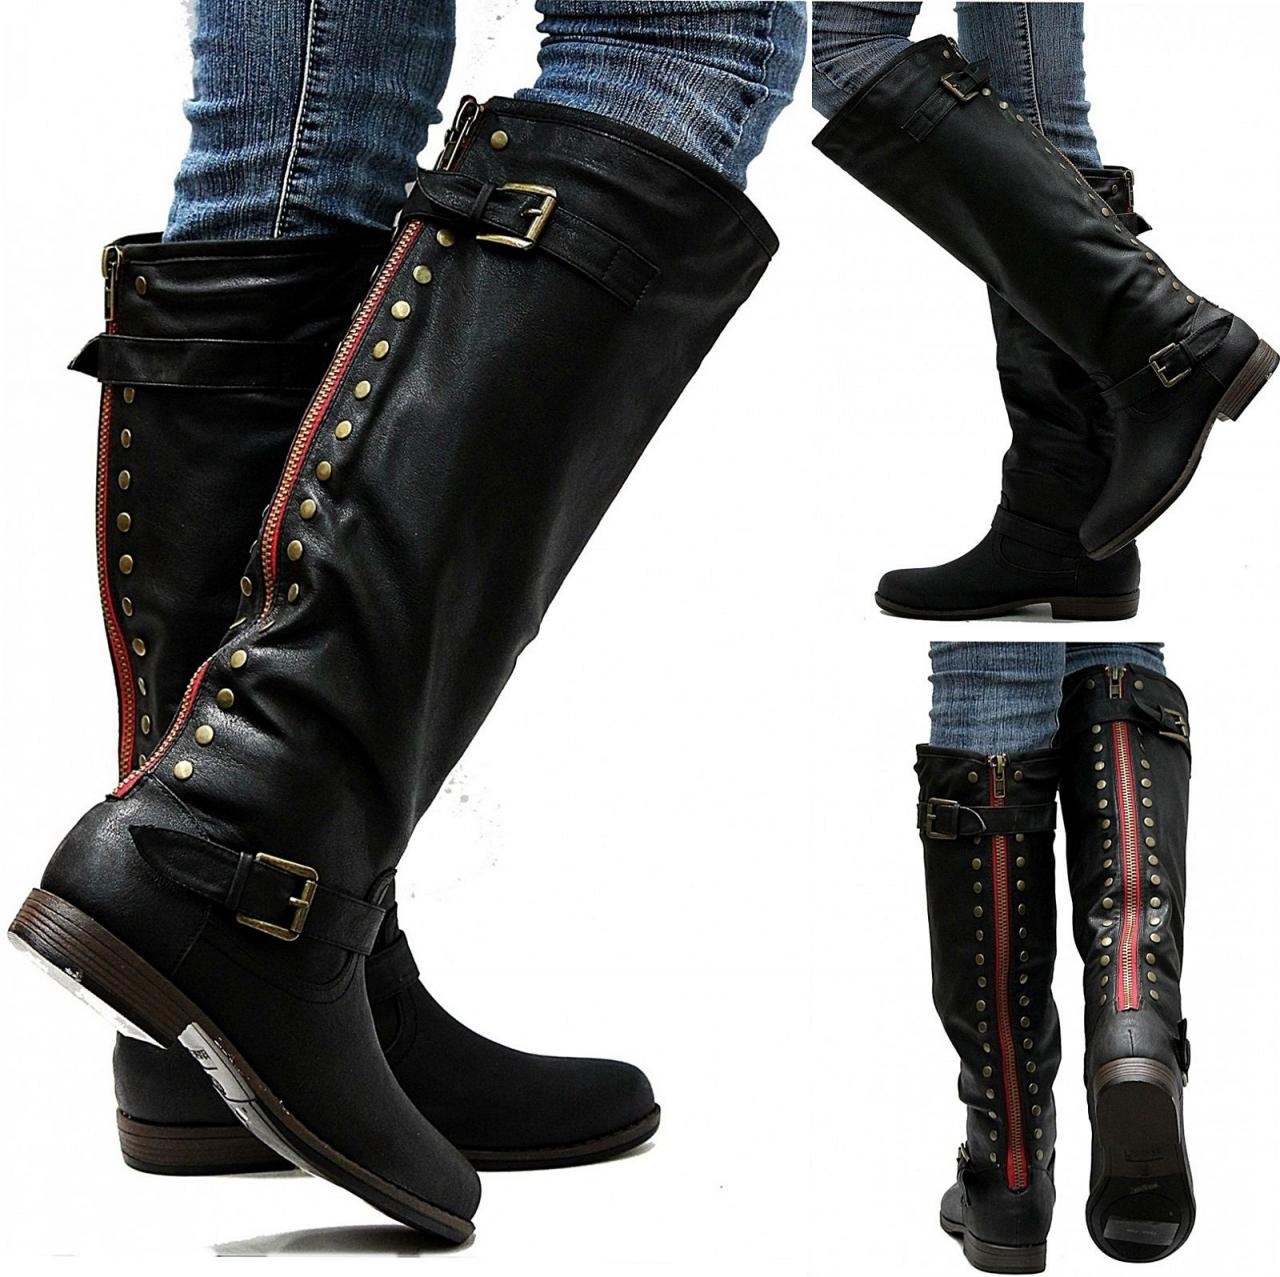 new womens jm18 zipper black studded knee high